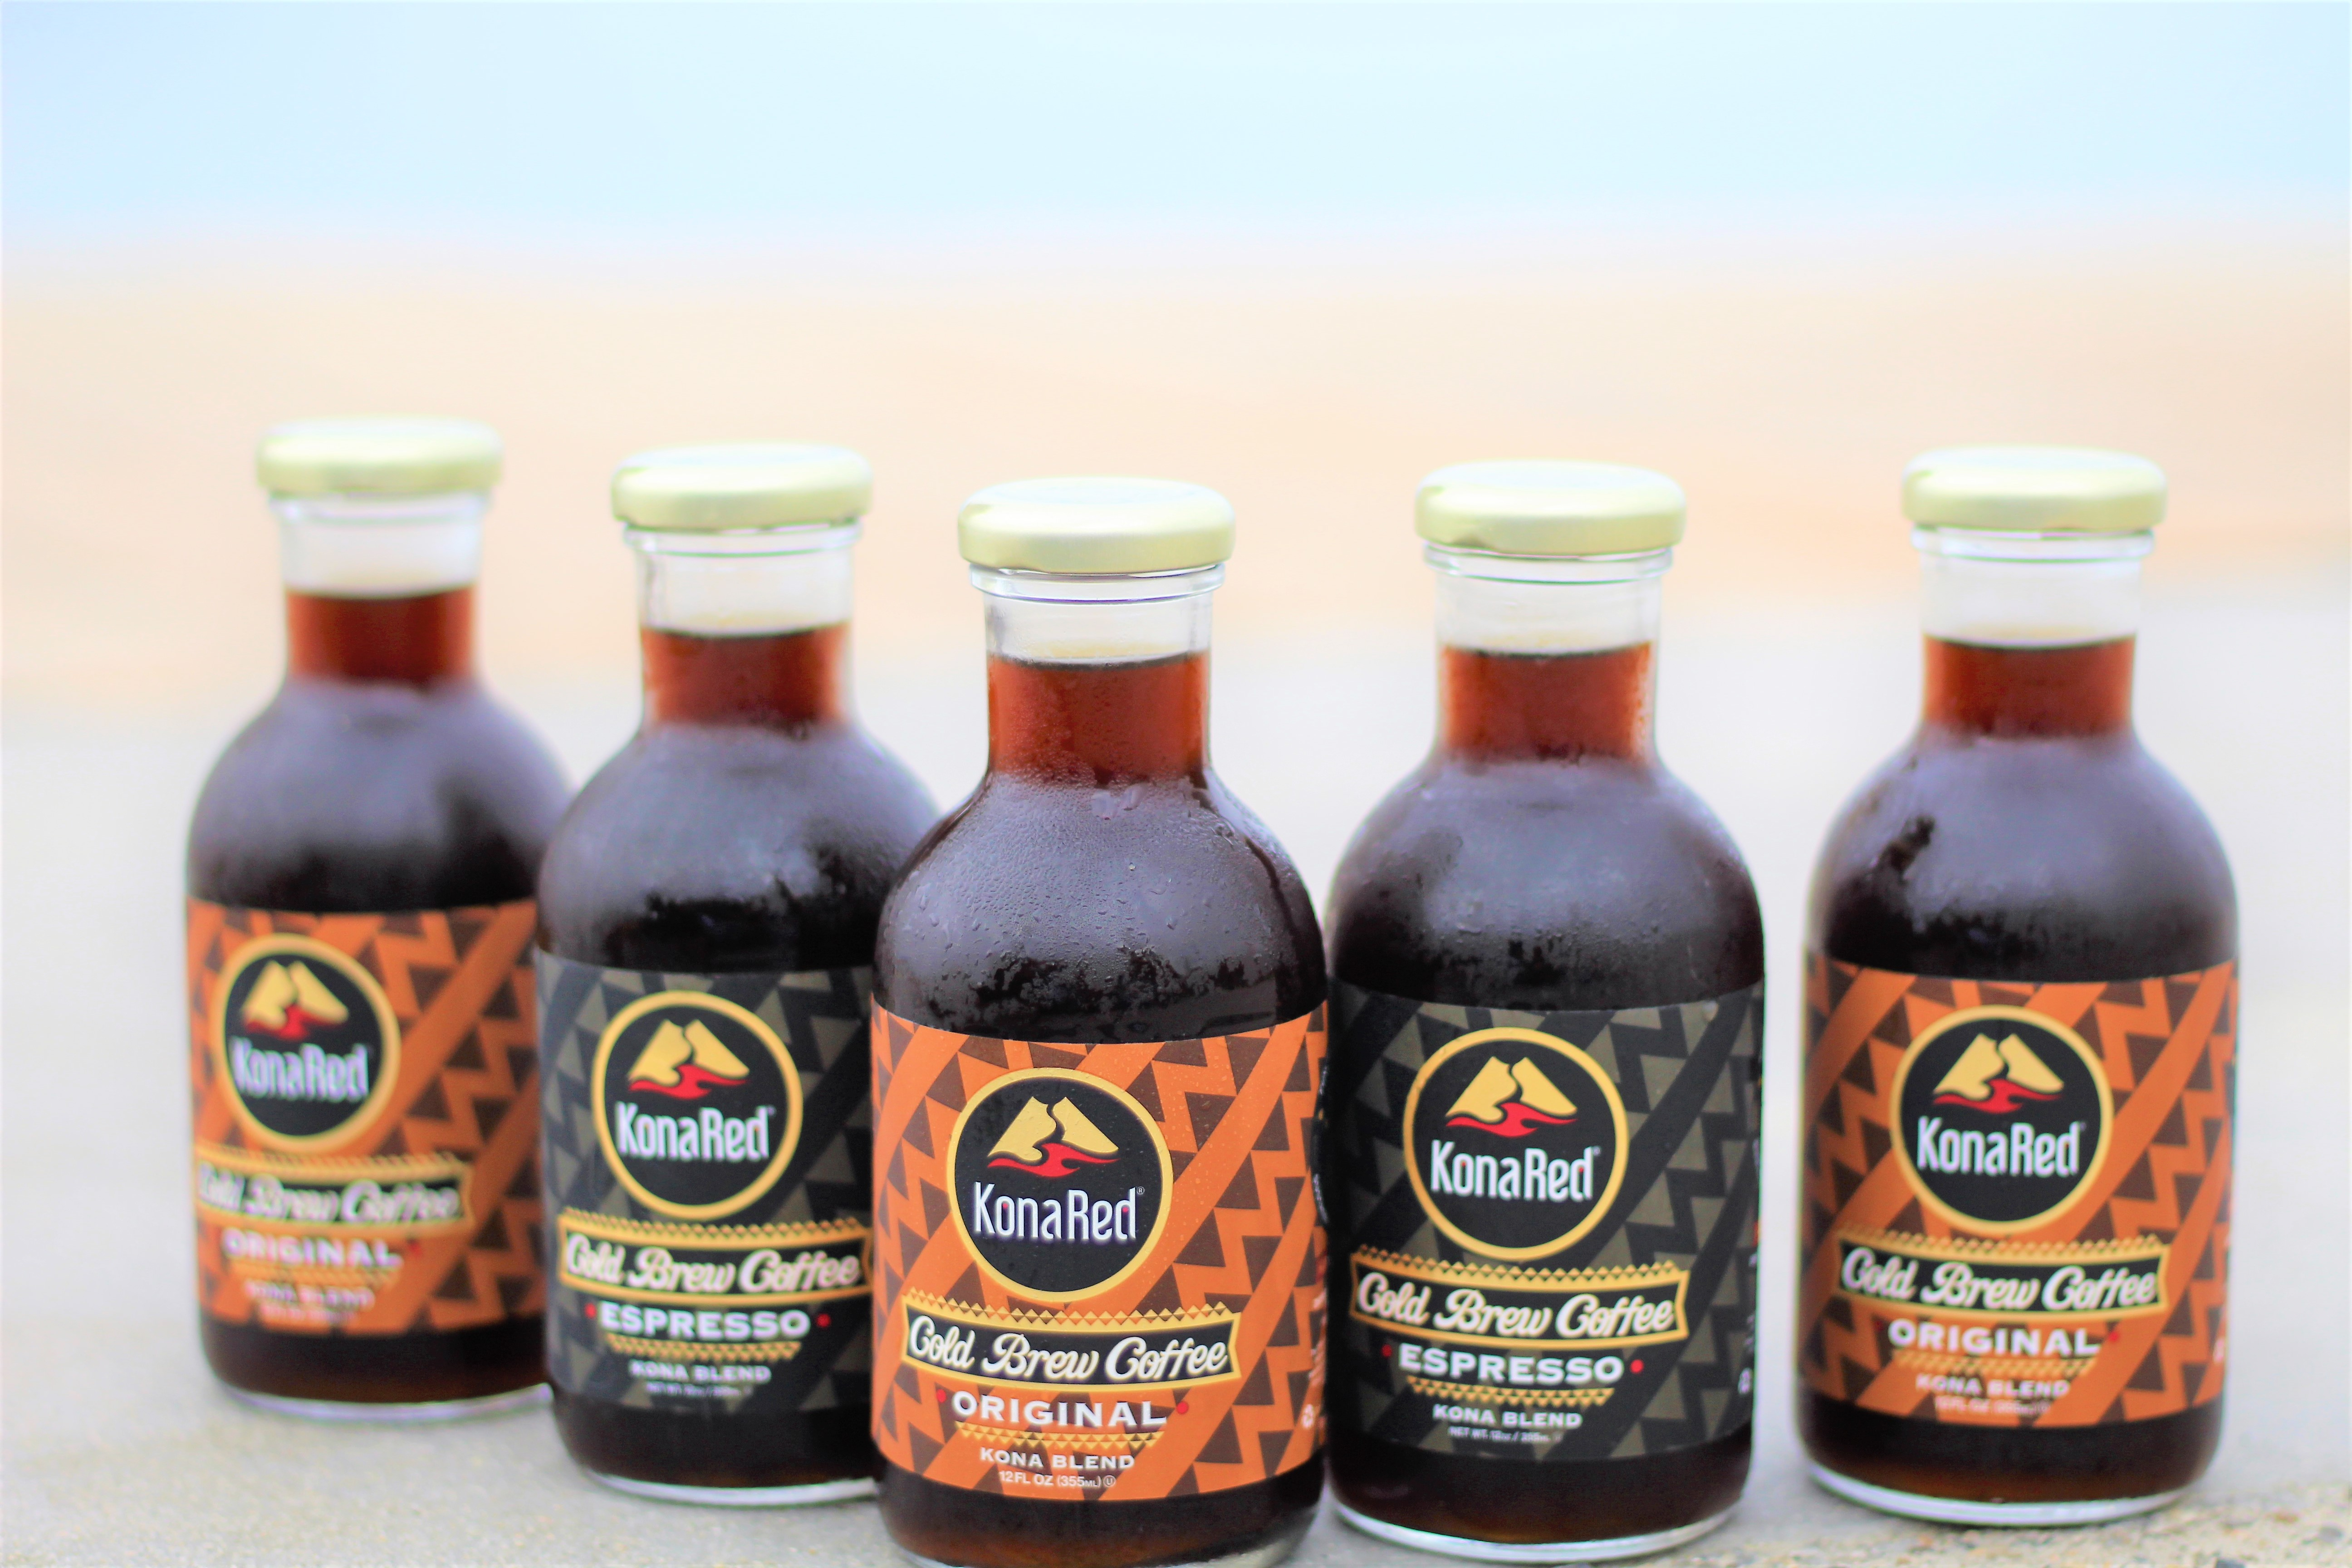 Enter for your chance to win acase of Konared cold brewed coffees in a variety of flavors. Whether you are a fan of more bitter coffee or sweet coffee, they have flavors for all taste palettes: Original Cold Brew, Espresso, Hawaiian Vanilla, Maui Caramel, and Maui Mocha